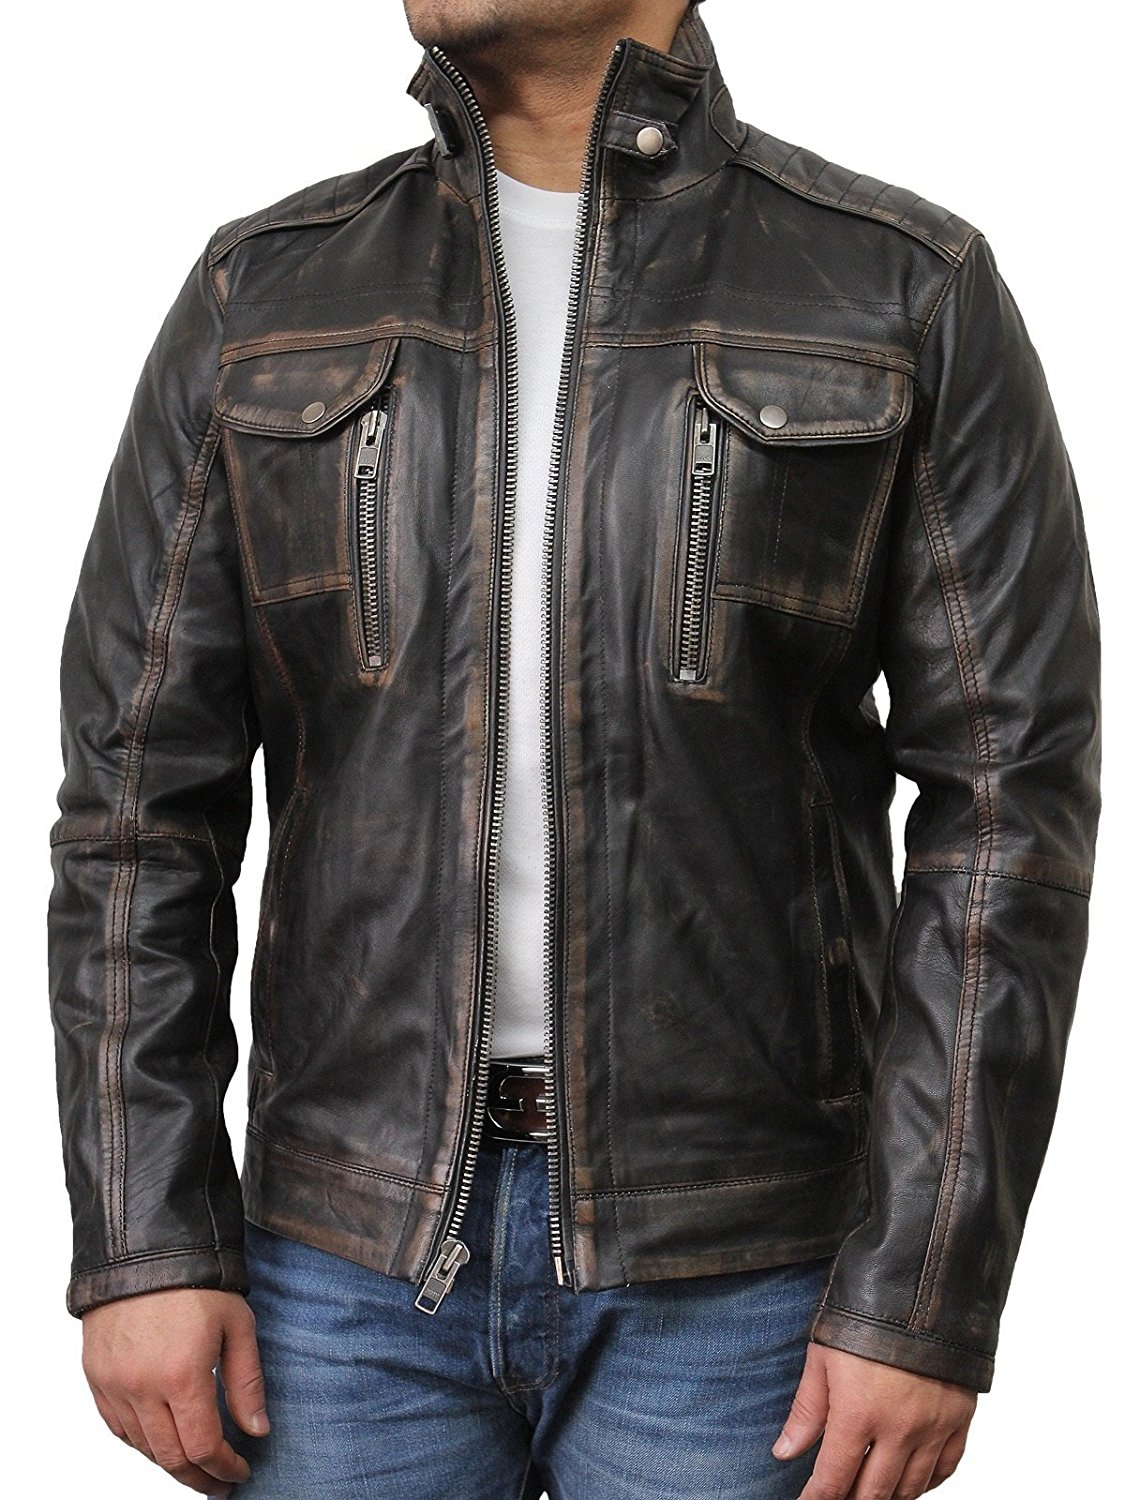 32d3970047252 Get Quotations · Brandslock Mens Leather Biker Jacket Vintage Distressed  Genuine Leather Motorcycle Jacket